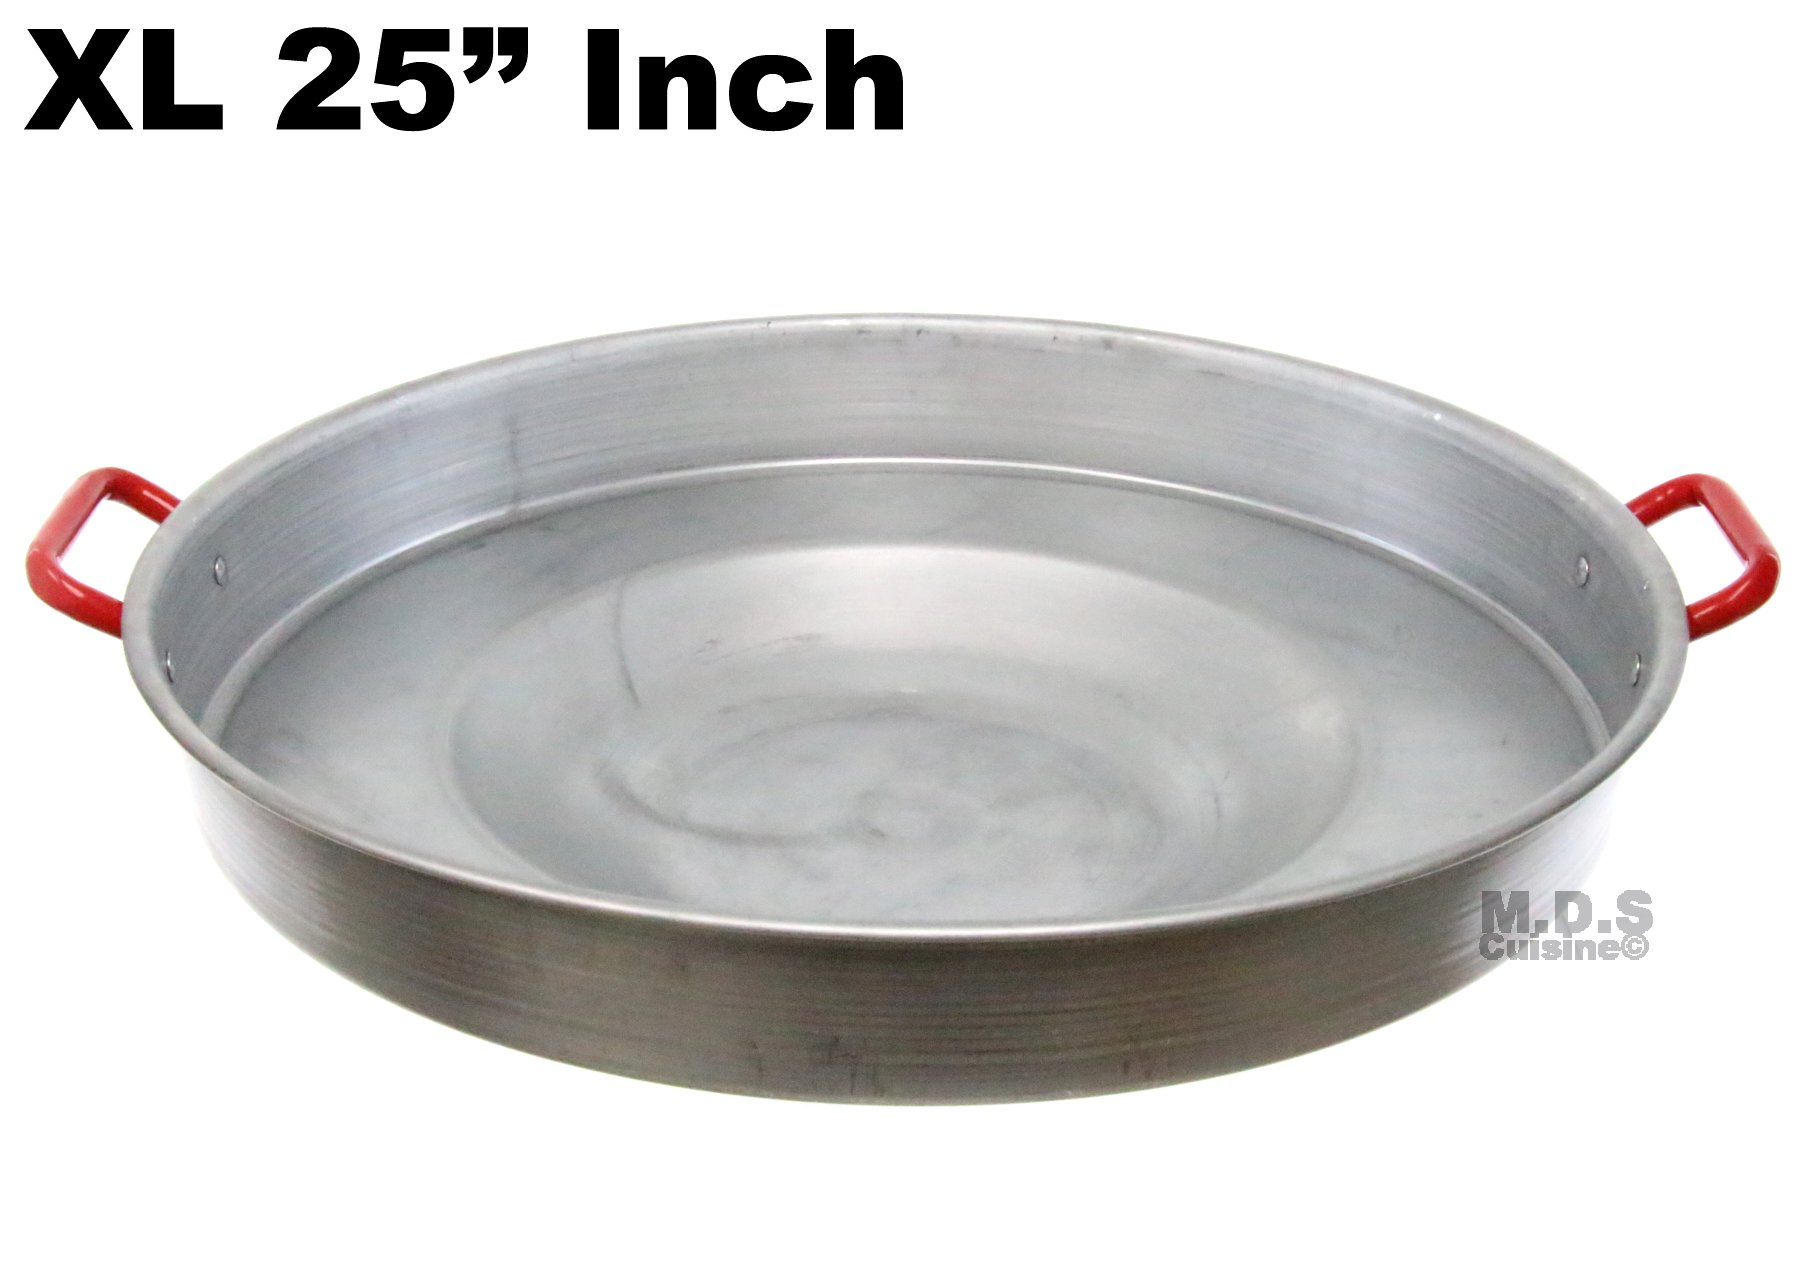 Comal 25'' Concave Round Heavy Duty Traditional Durable Outdoors Stir Fry Para Freir Cazo